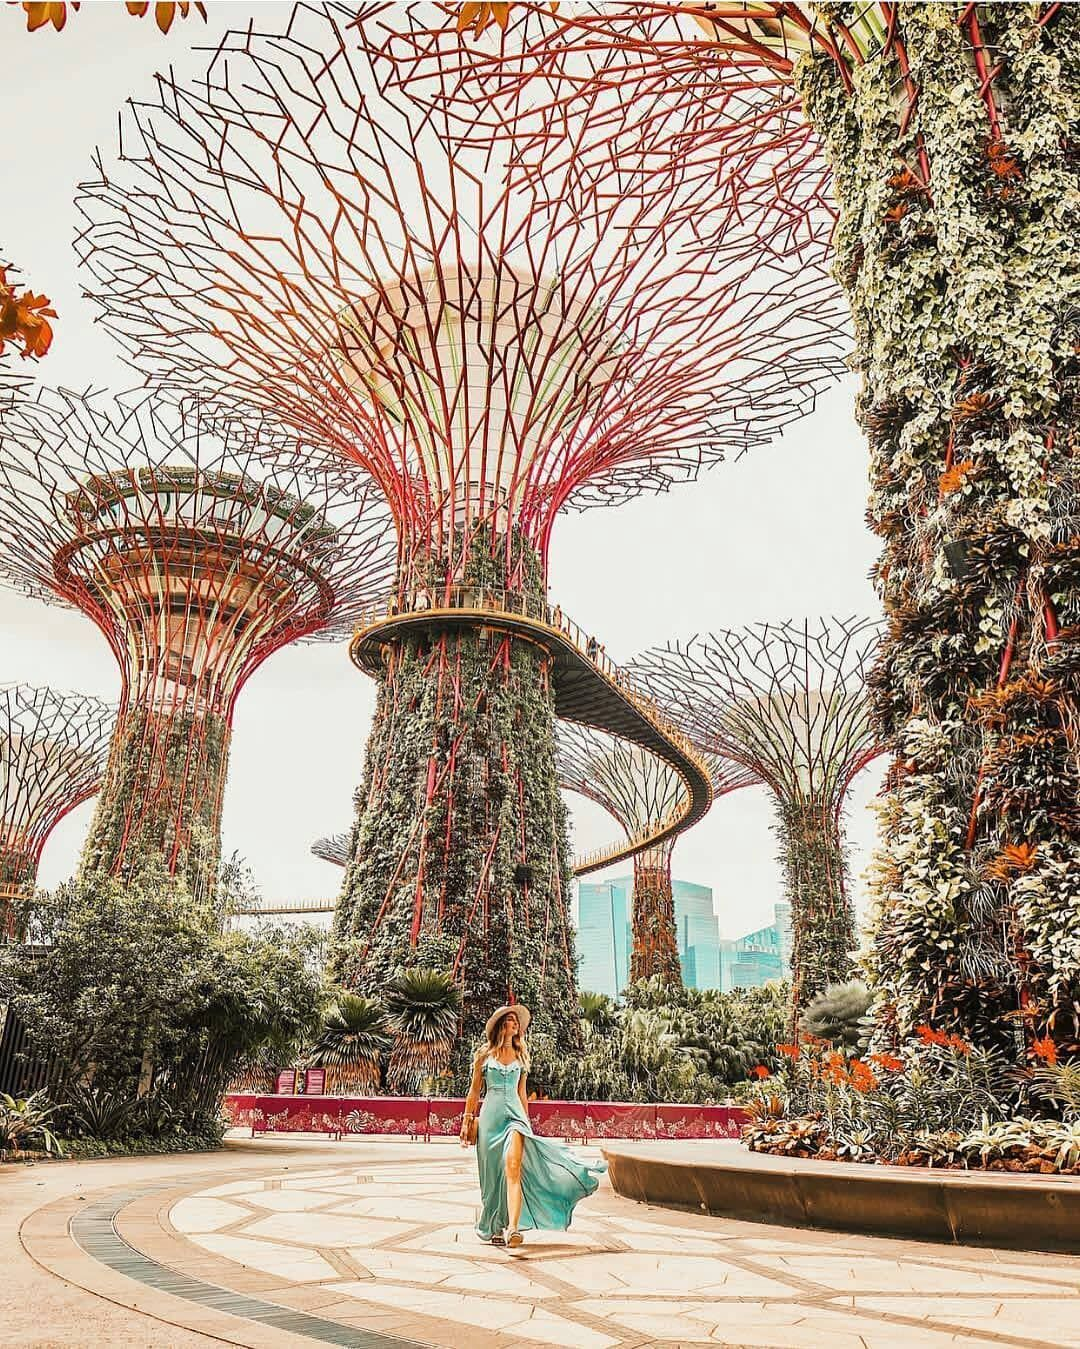 Travel Lifestyle Nature On Instagram Garden By The Bay Singapore Picture By N Kulikova M Singapore Travel Cool Places To Visit Travel